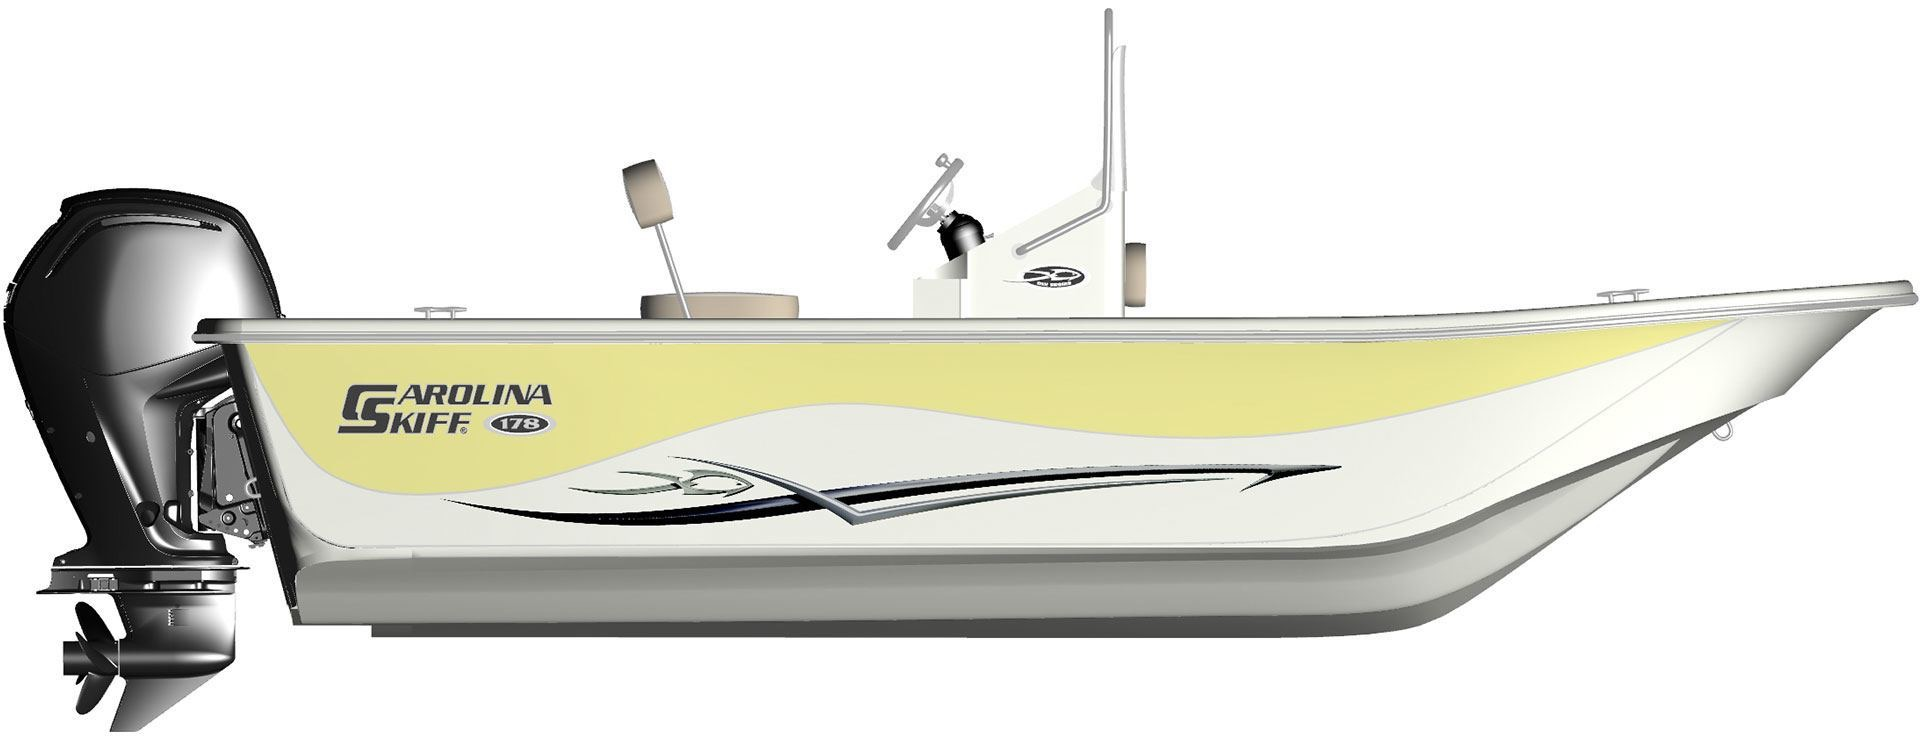 Carolina Skiff DLV 178